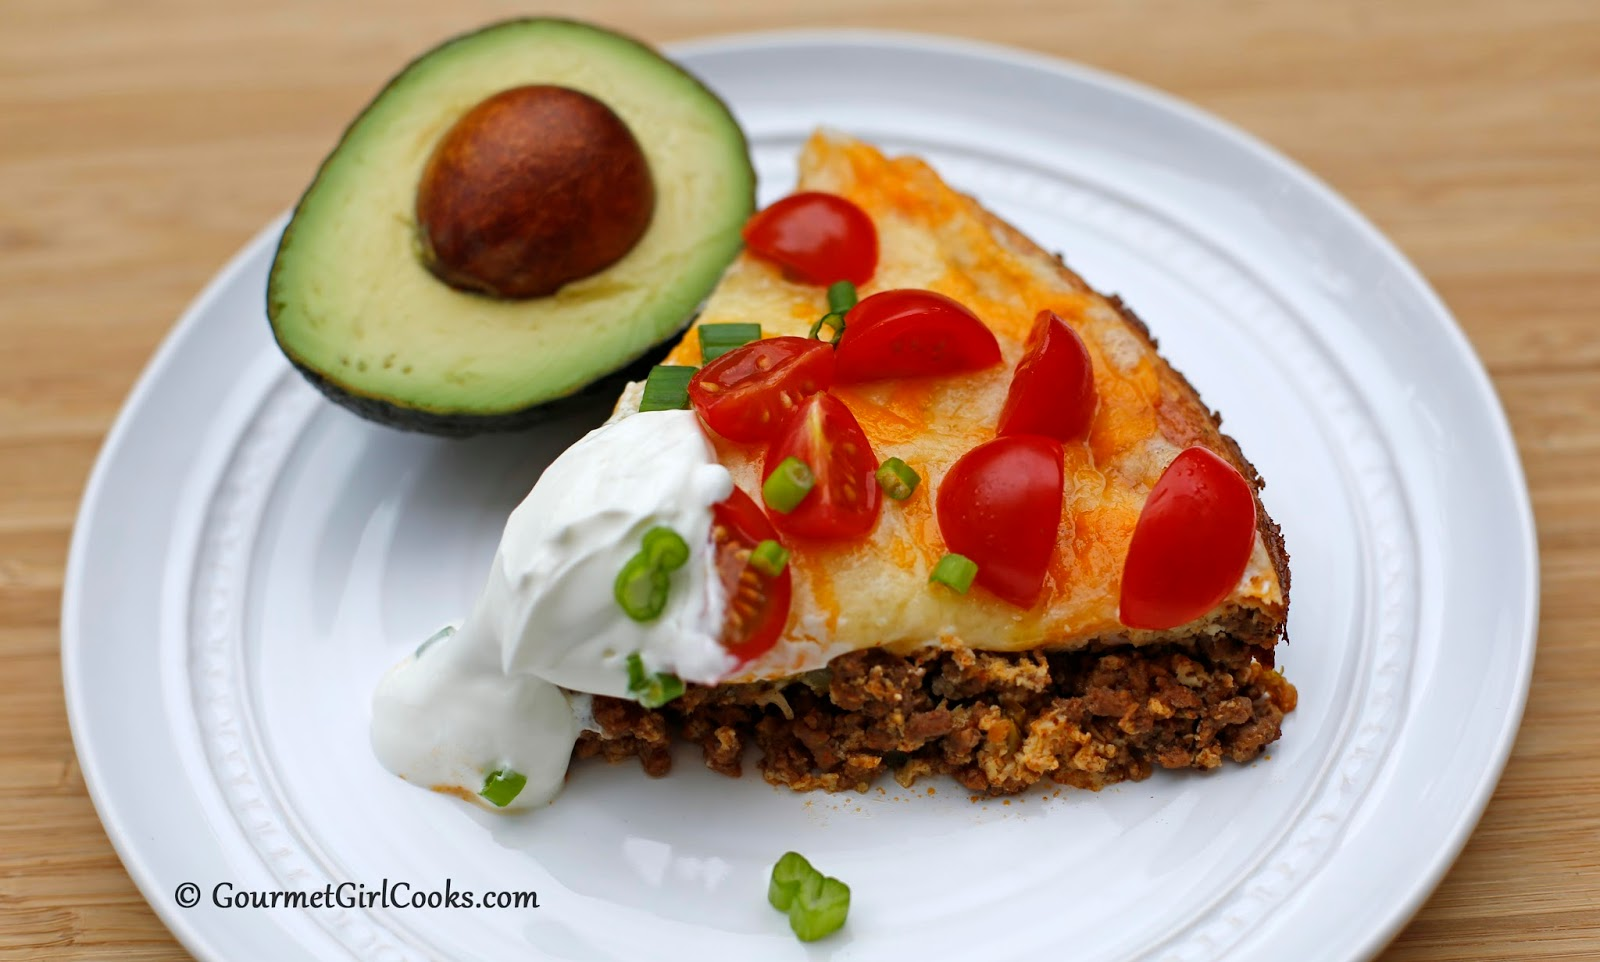 Gourmet Girl Cooks: Impossibly Easy Taco Pie - Low Carb & Gluten Free